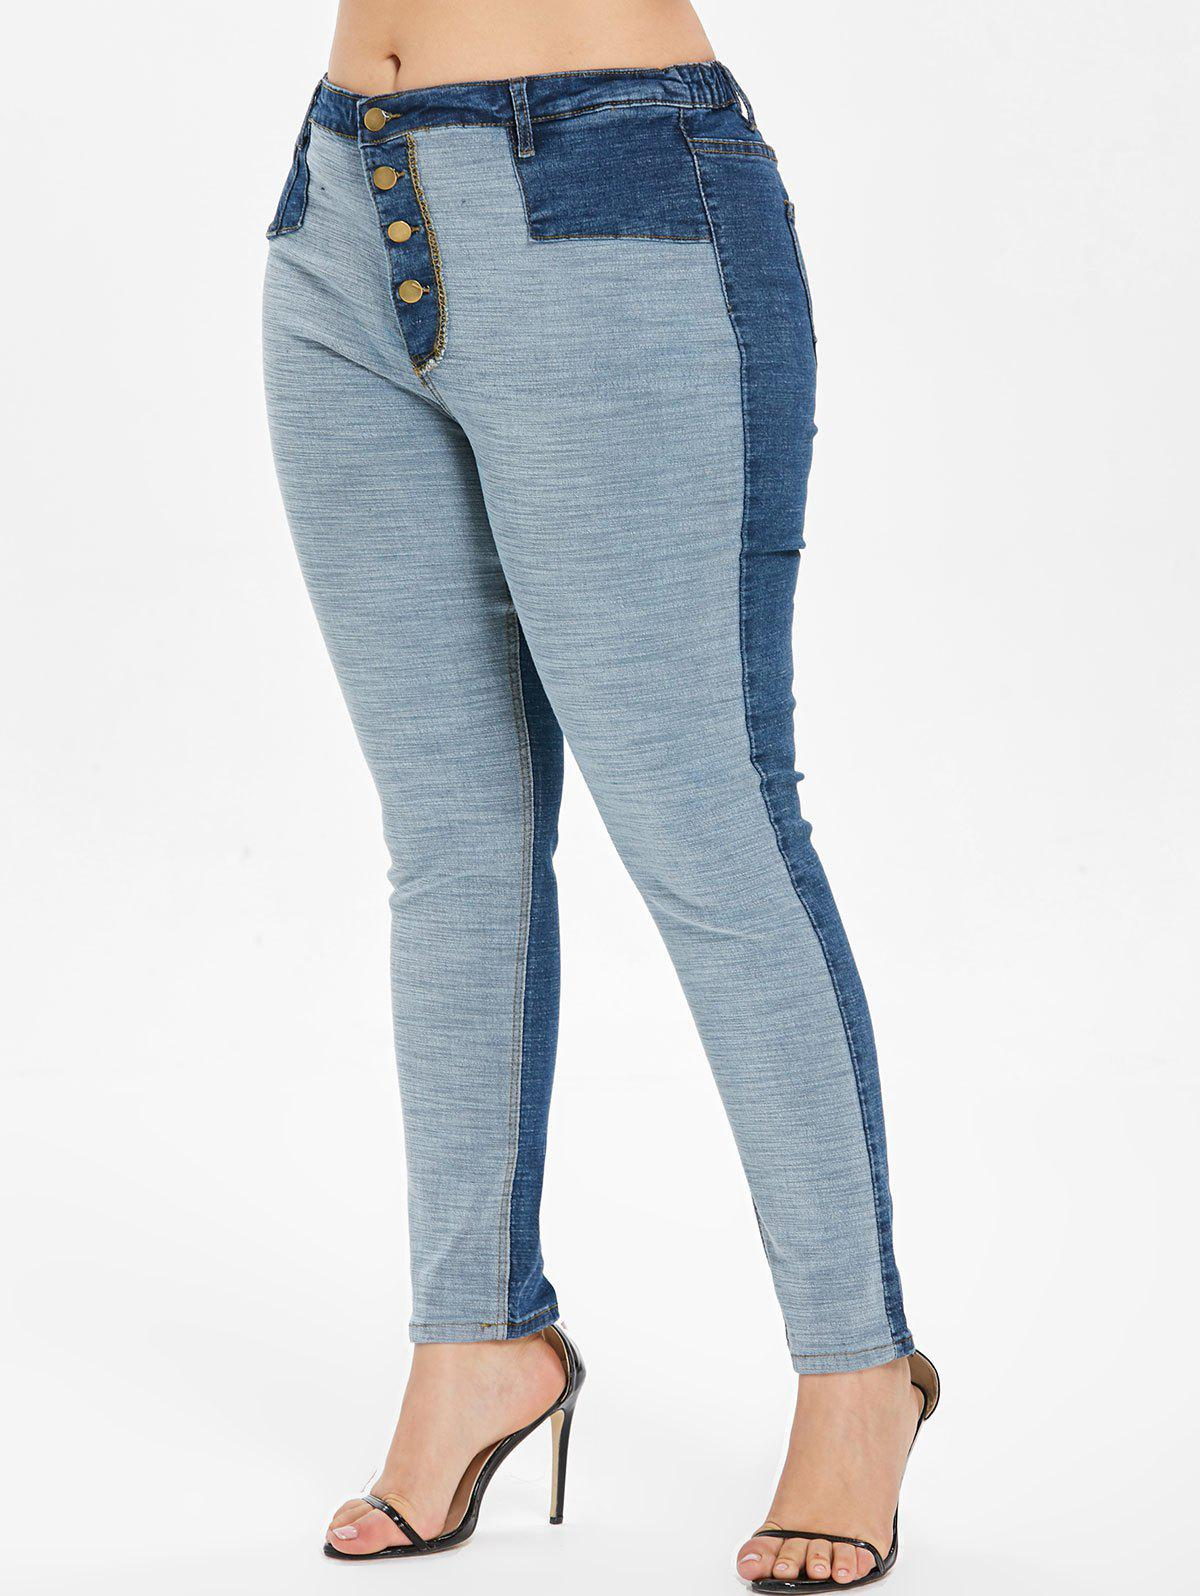 Chic Plus Size High Waist Inside Out Jeans